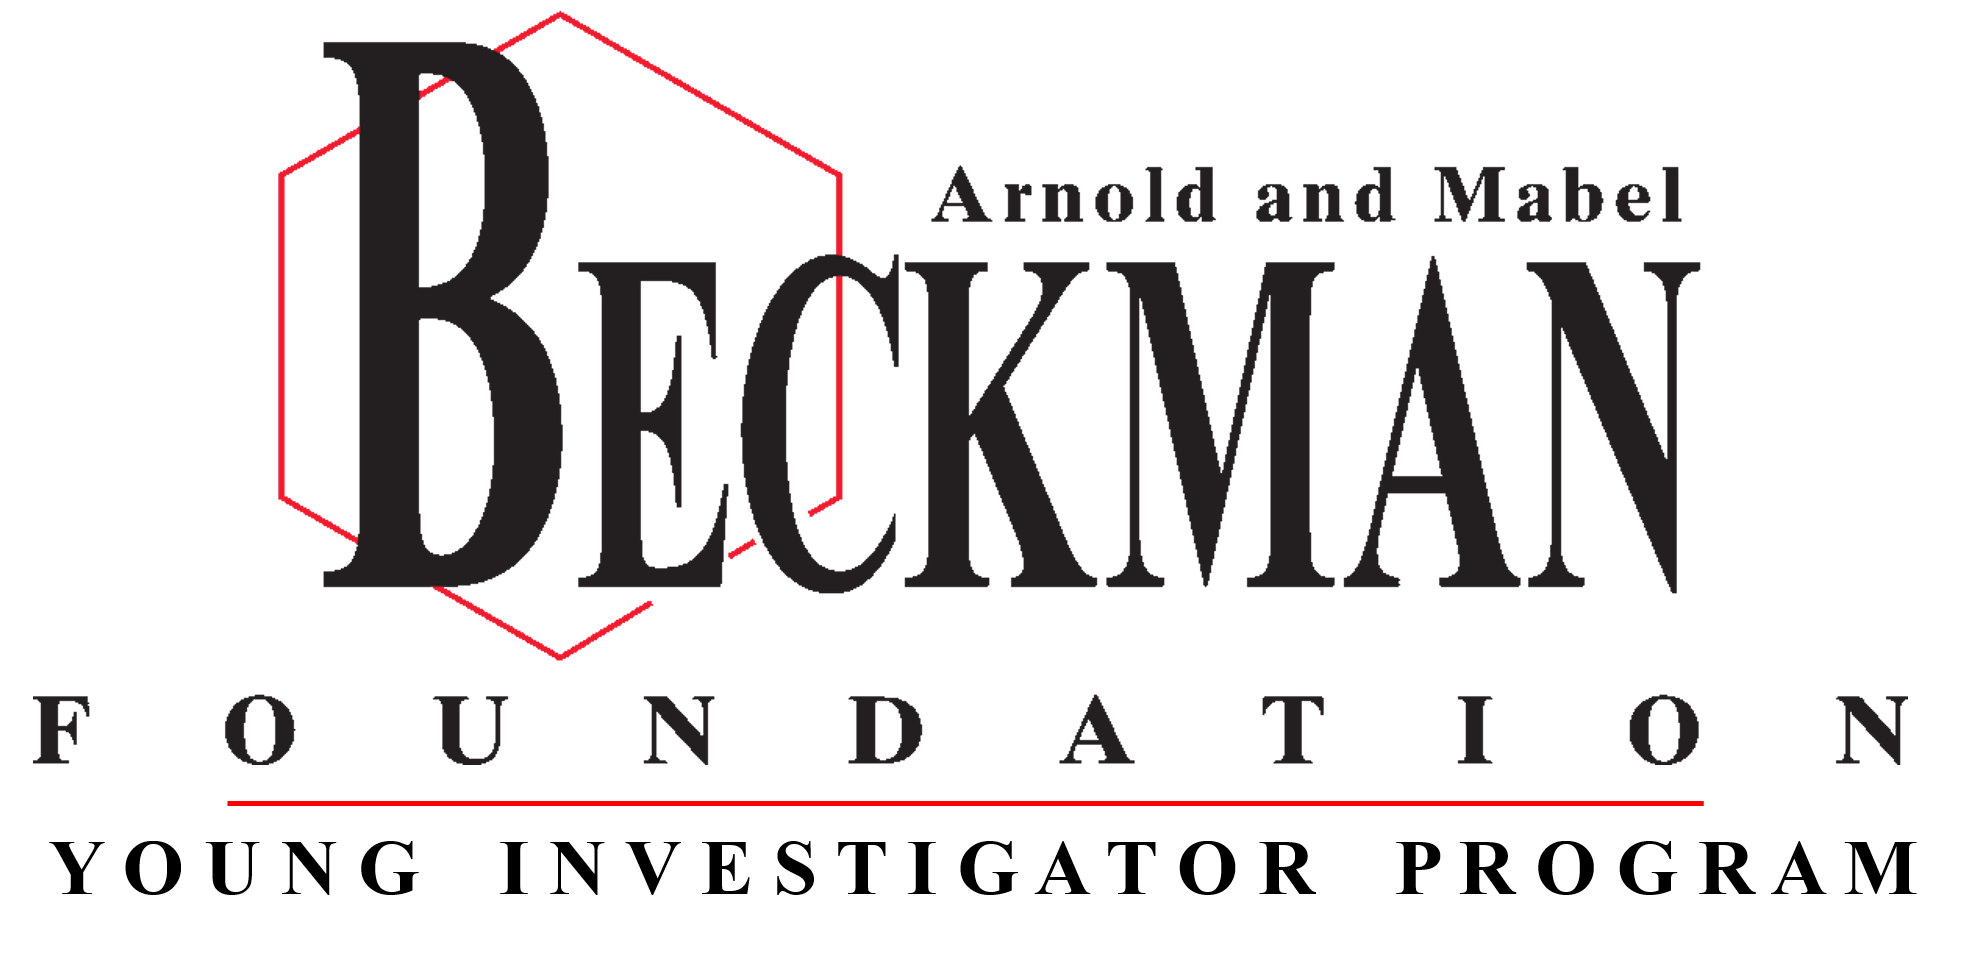 Beckman-foundation.png